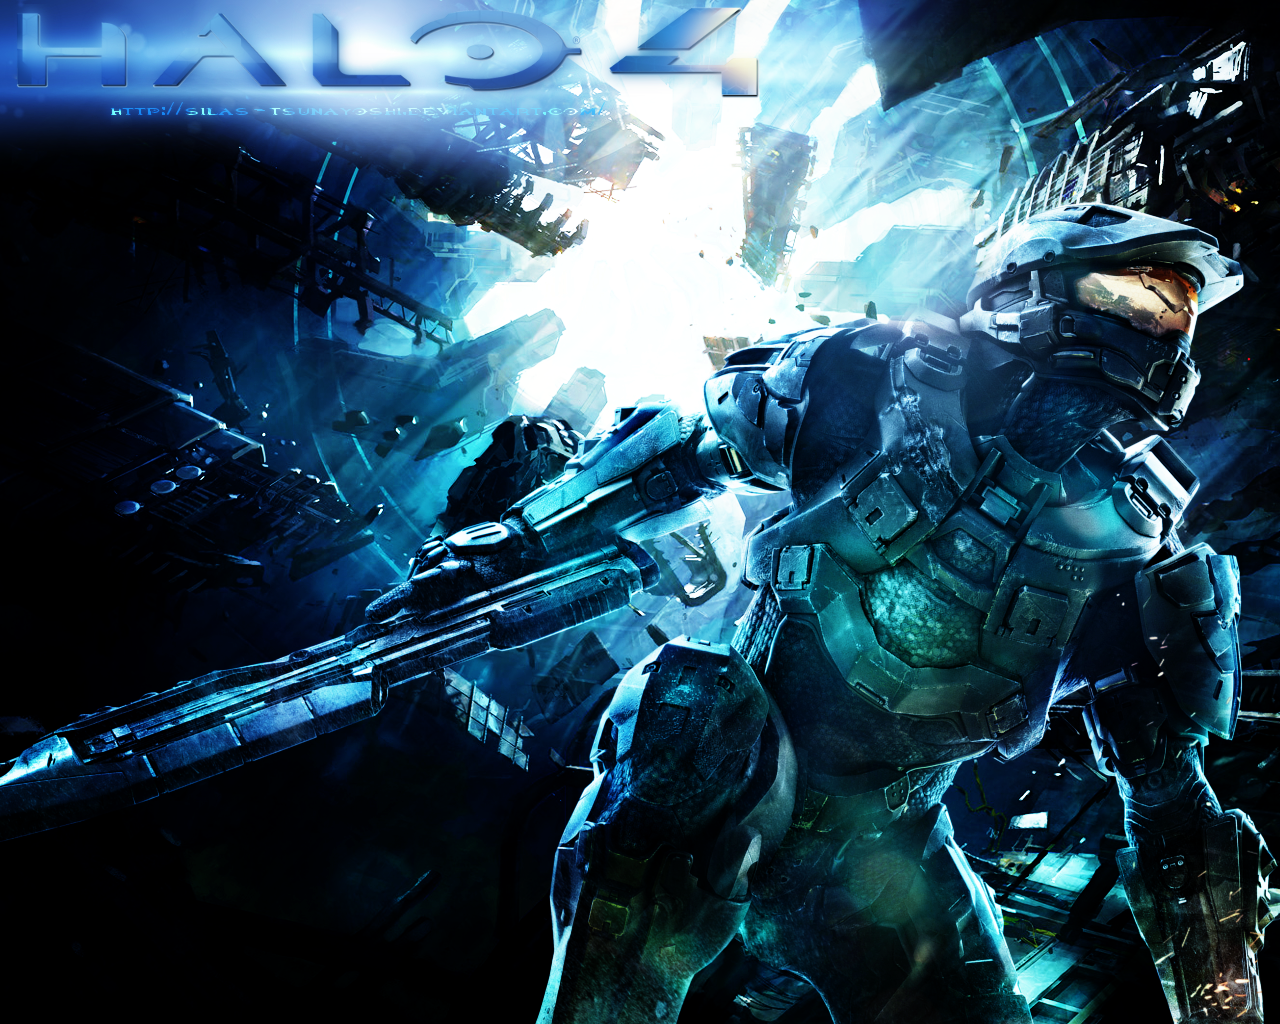 Free Download Related Pix Halo 4 Wallpaper Master Chief Halo